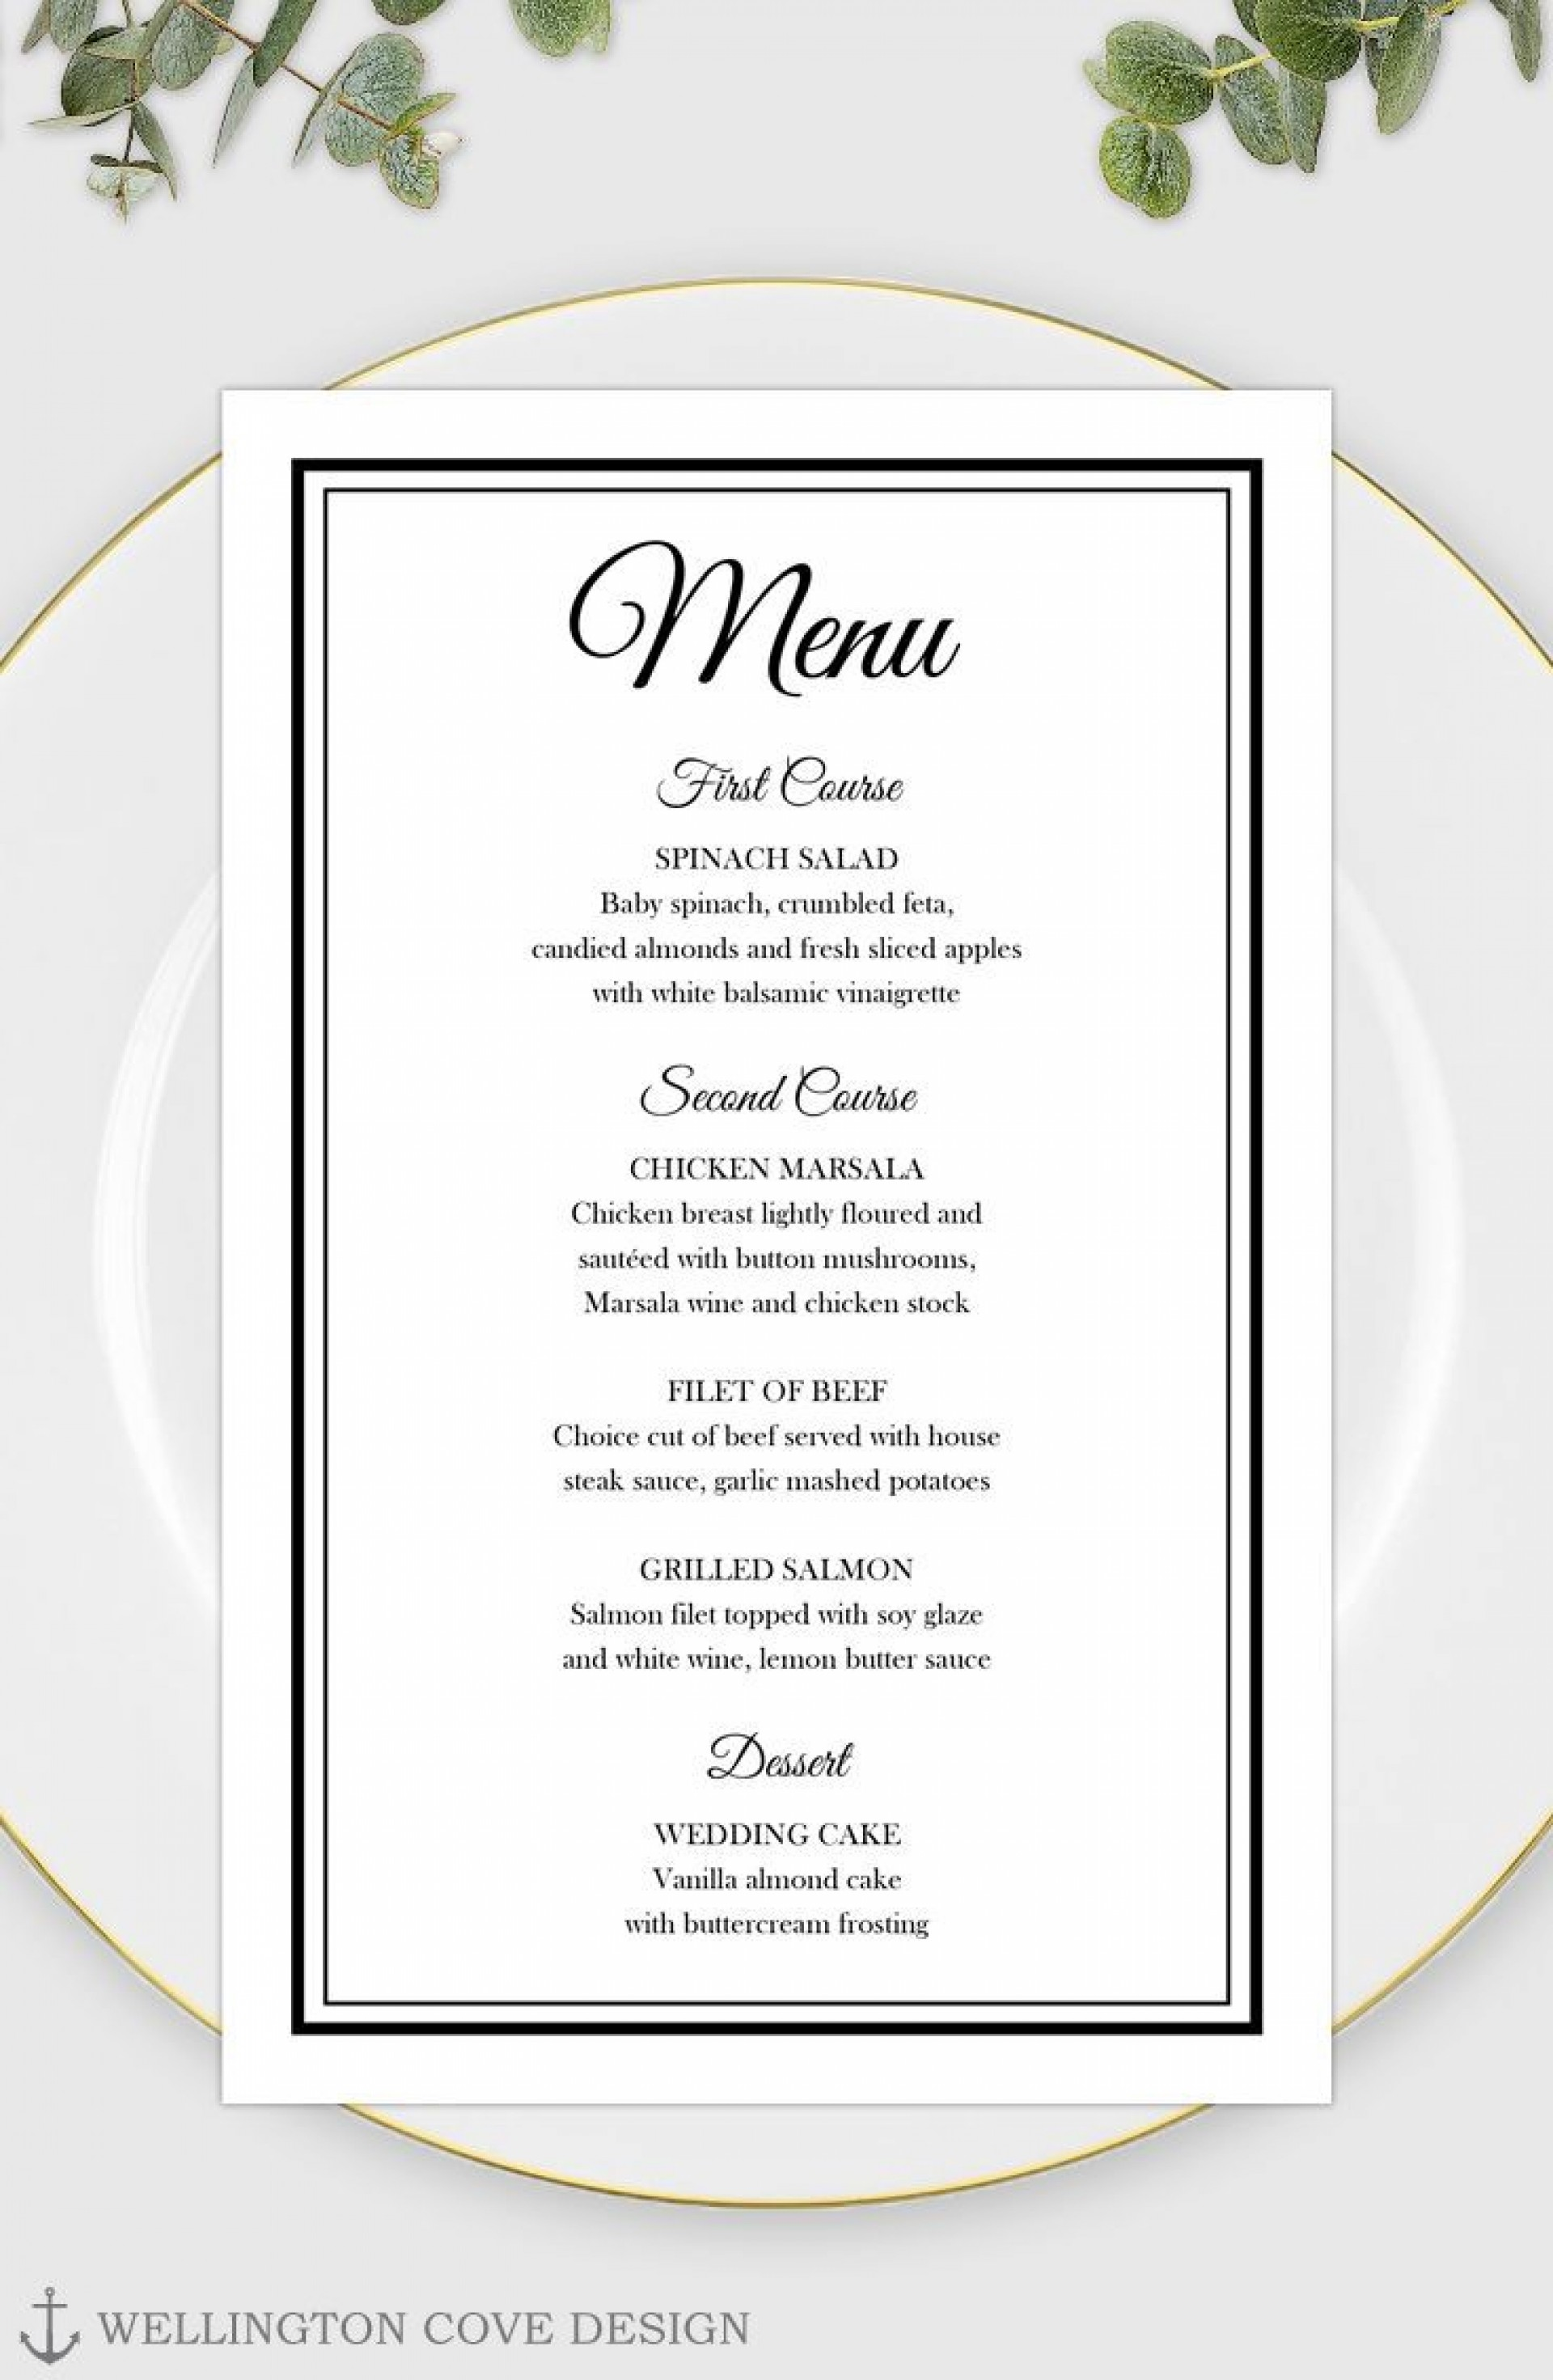 004 Archaicawful Free Online Wedding Menu Template Highest Clarity  Templates1920